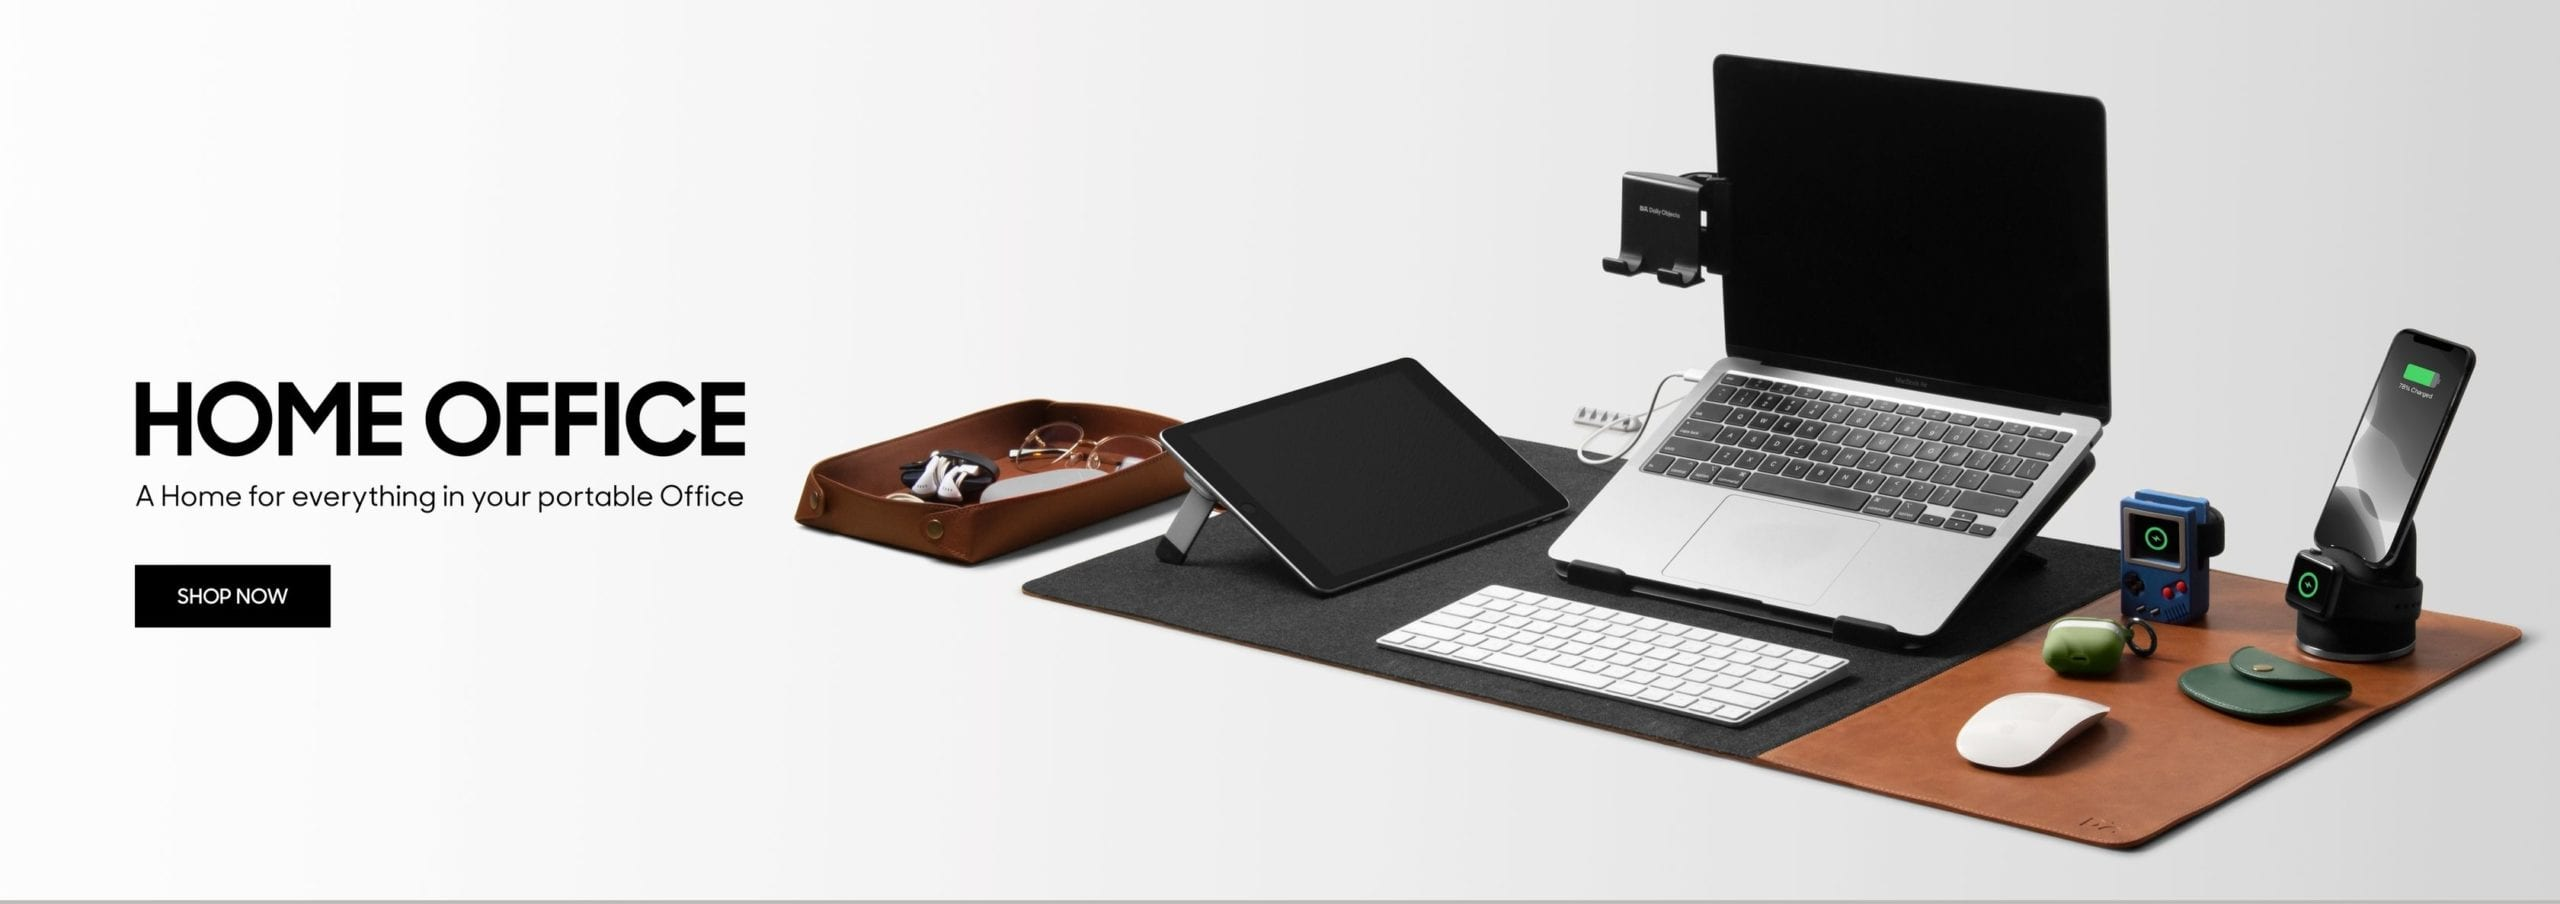 Stands for Laptops, Macbooks, Phone, work from home essentials in Kuwait | Buy Online at klippik.com